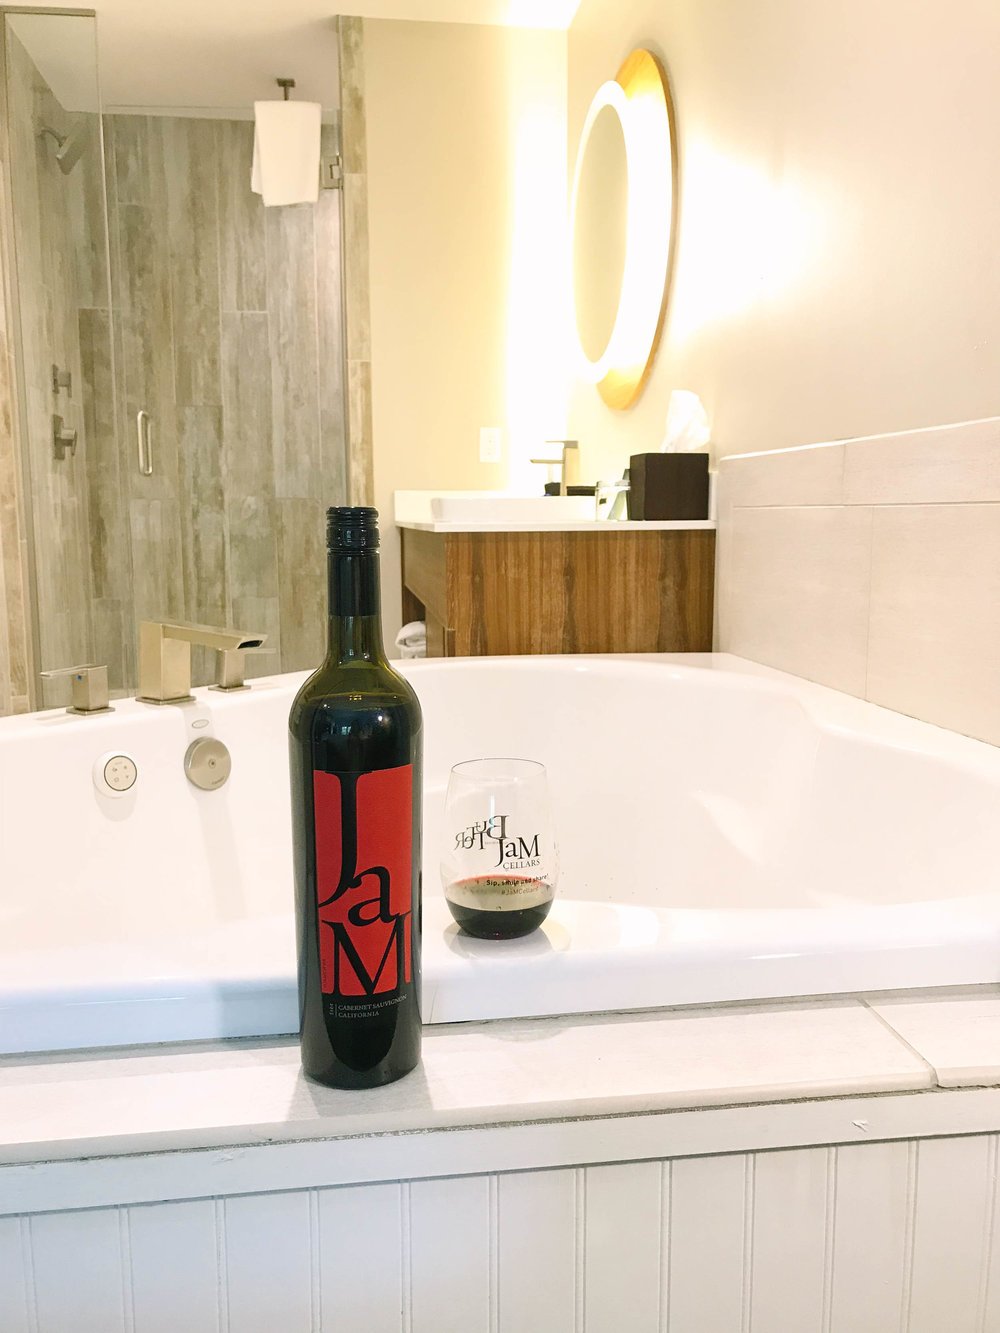 Unwind at Margaritaville Island Hotel in The Island Pigeon Forge, Tennessee with JaM Cellars Cabernet | Mallorie Owens